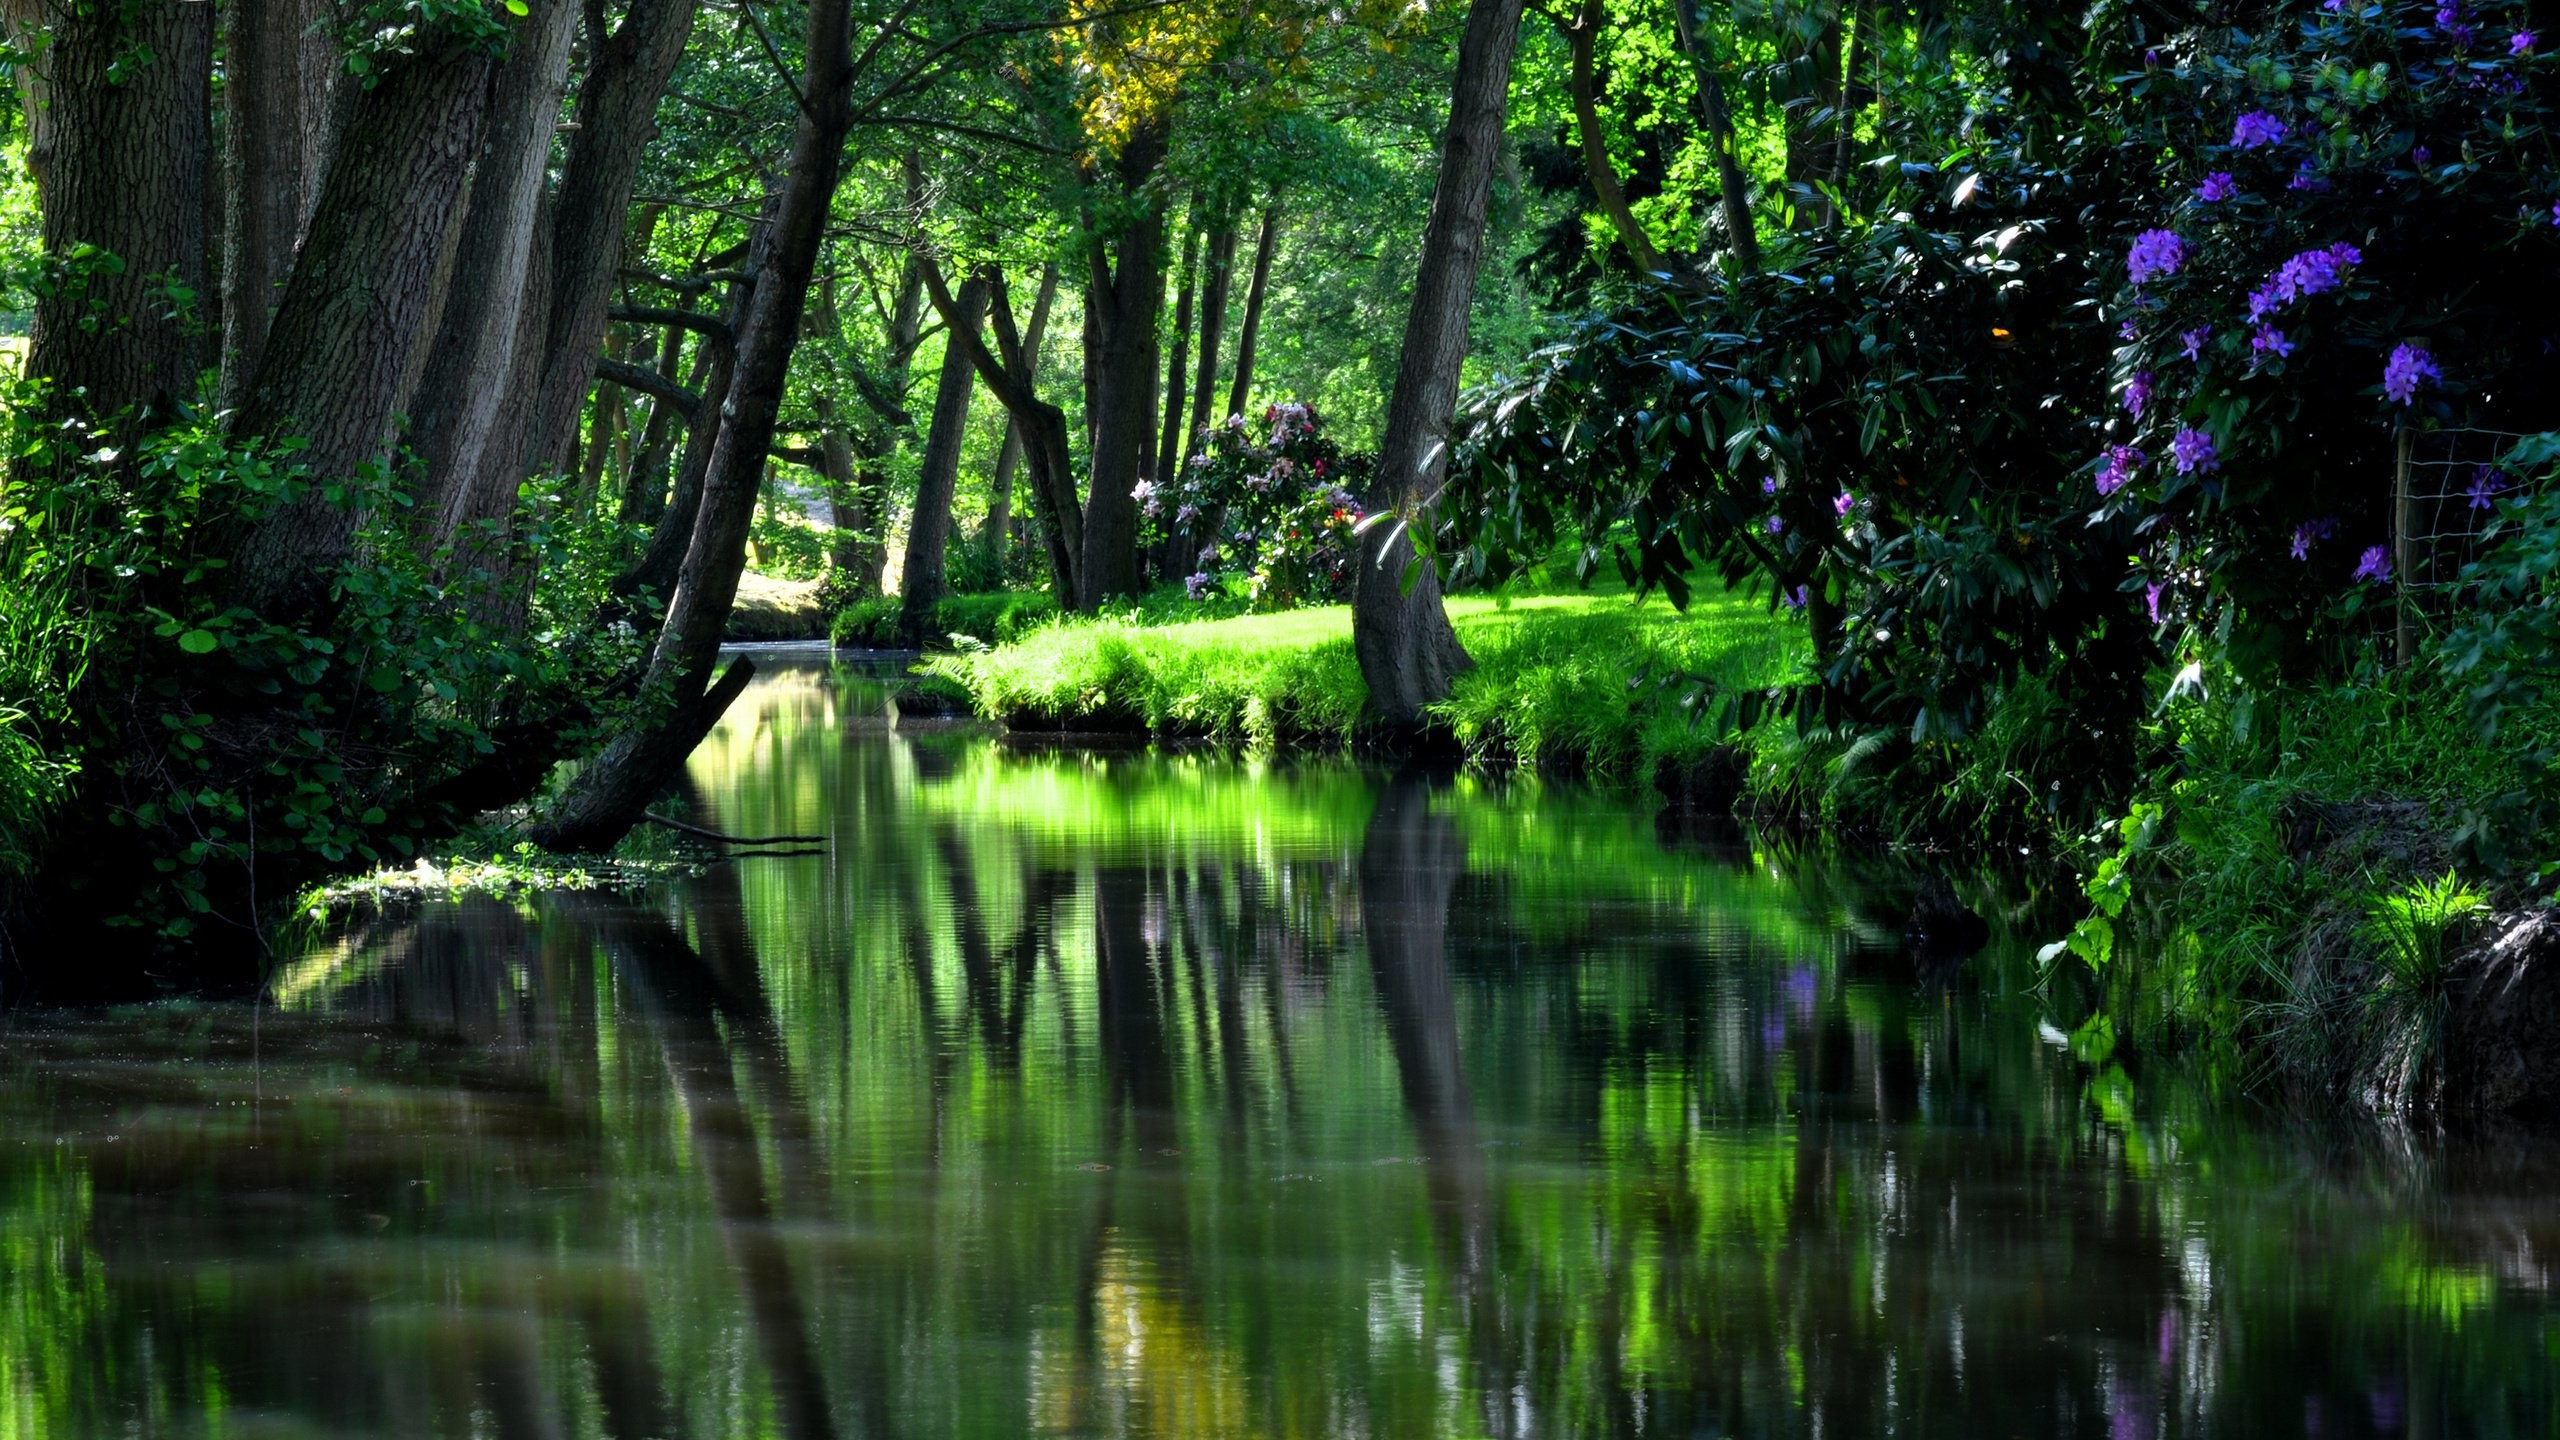 2560x1440 20 Fondos de Pantalla de Paisajes Naturales en HD. Calvin And HobbesDesktop  WallpapersThe RiverReal LifeSummer ...